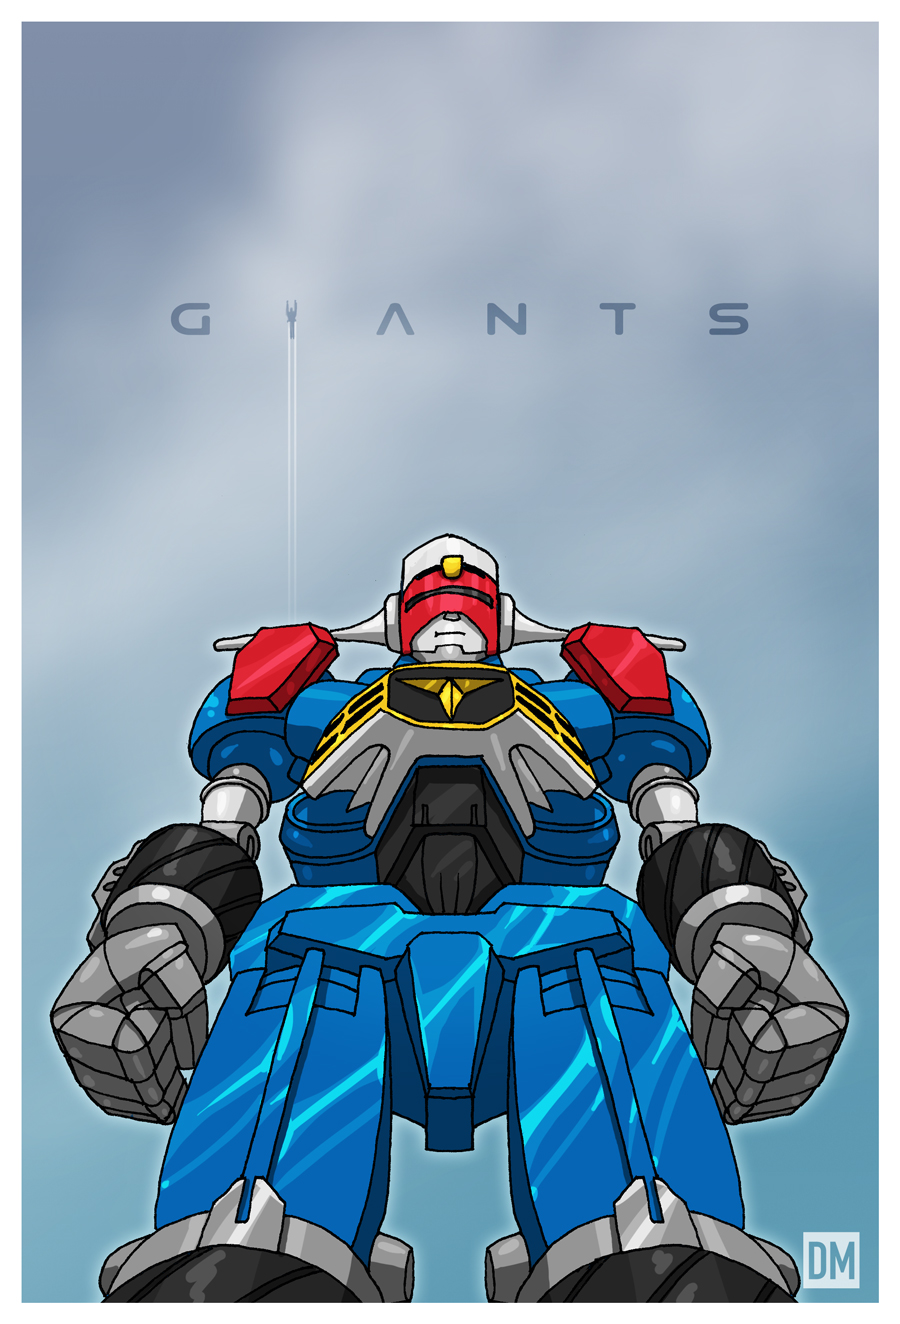 Giant - Dendoh 9 by DanielMead